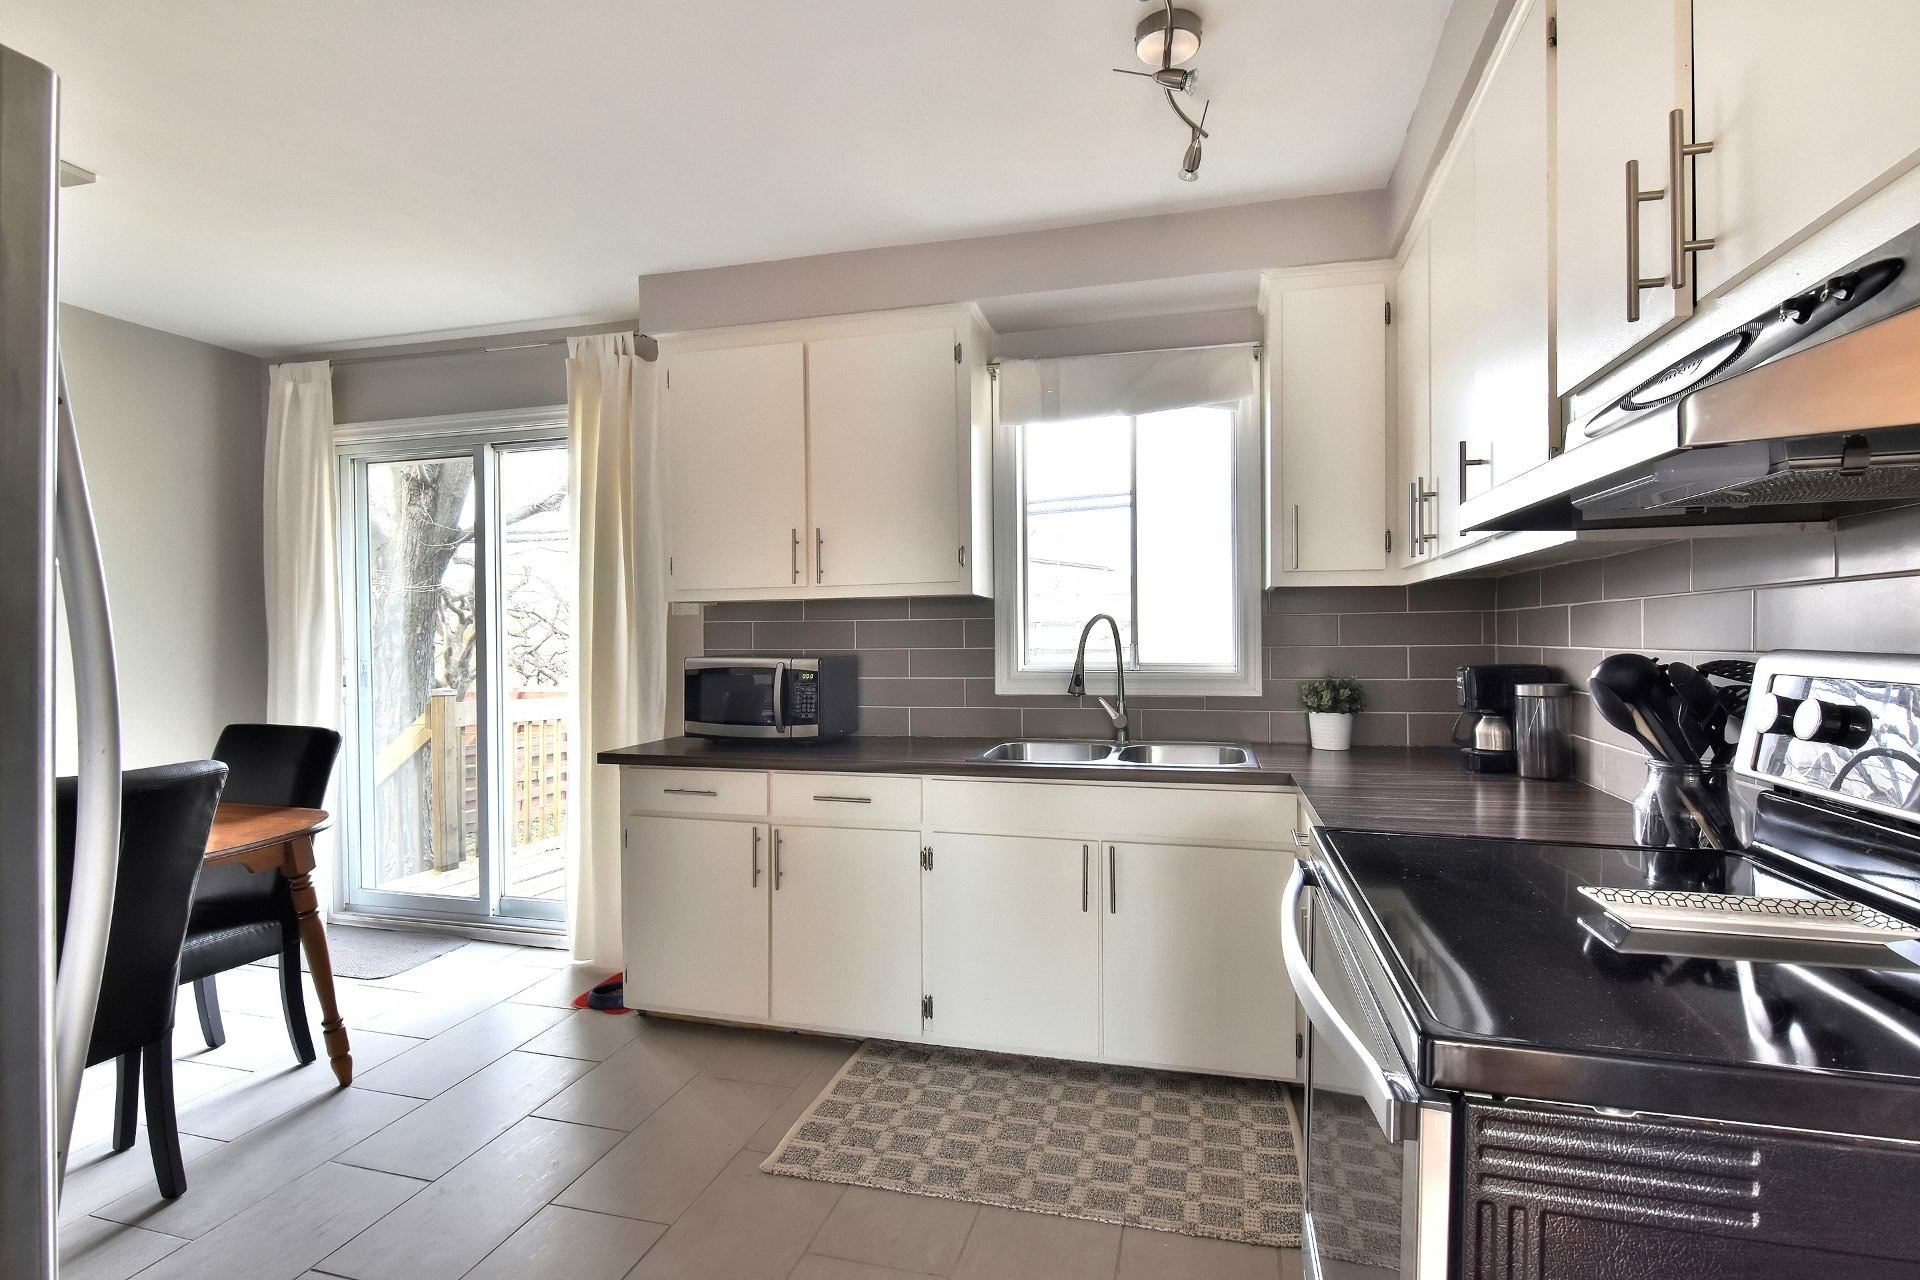 image 9 - House For sale Châteauguay - 12 rooms